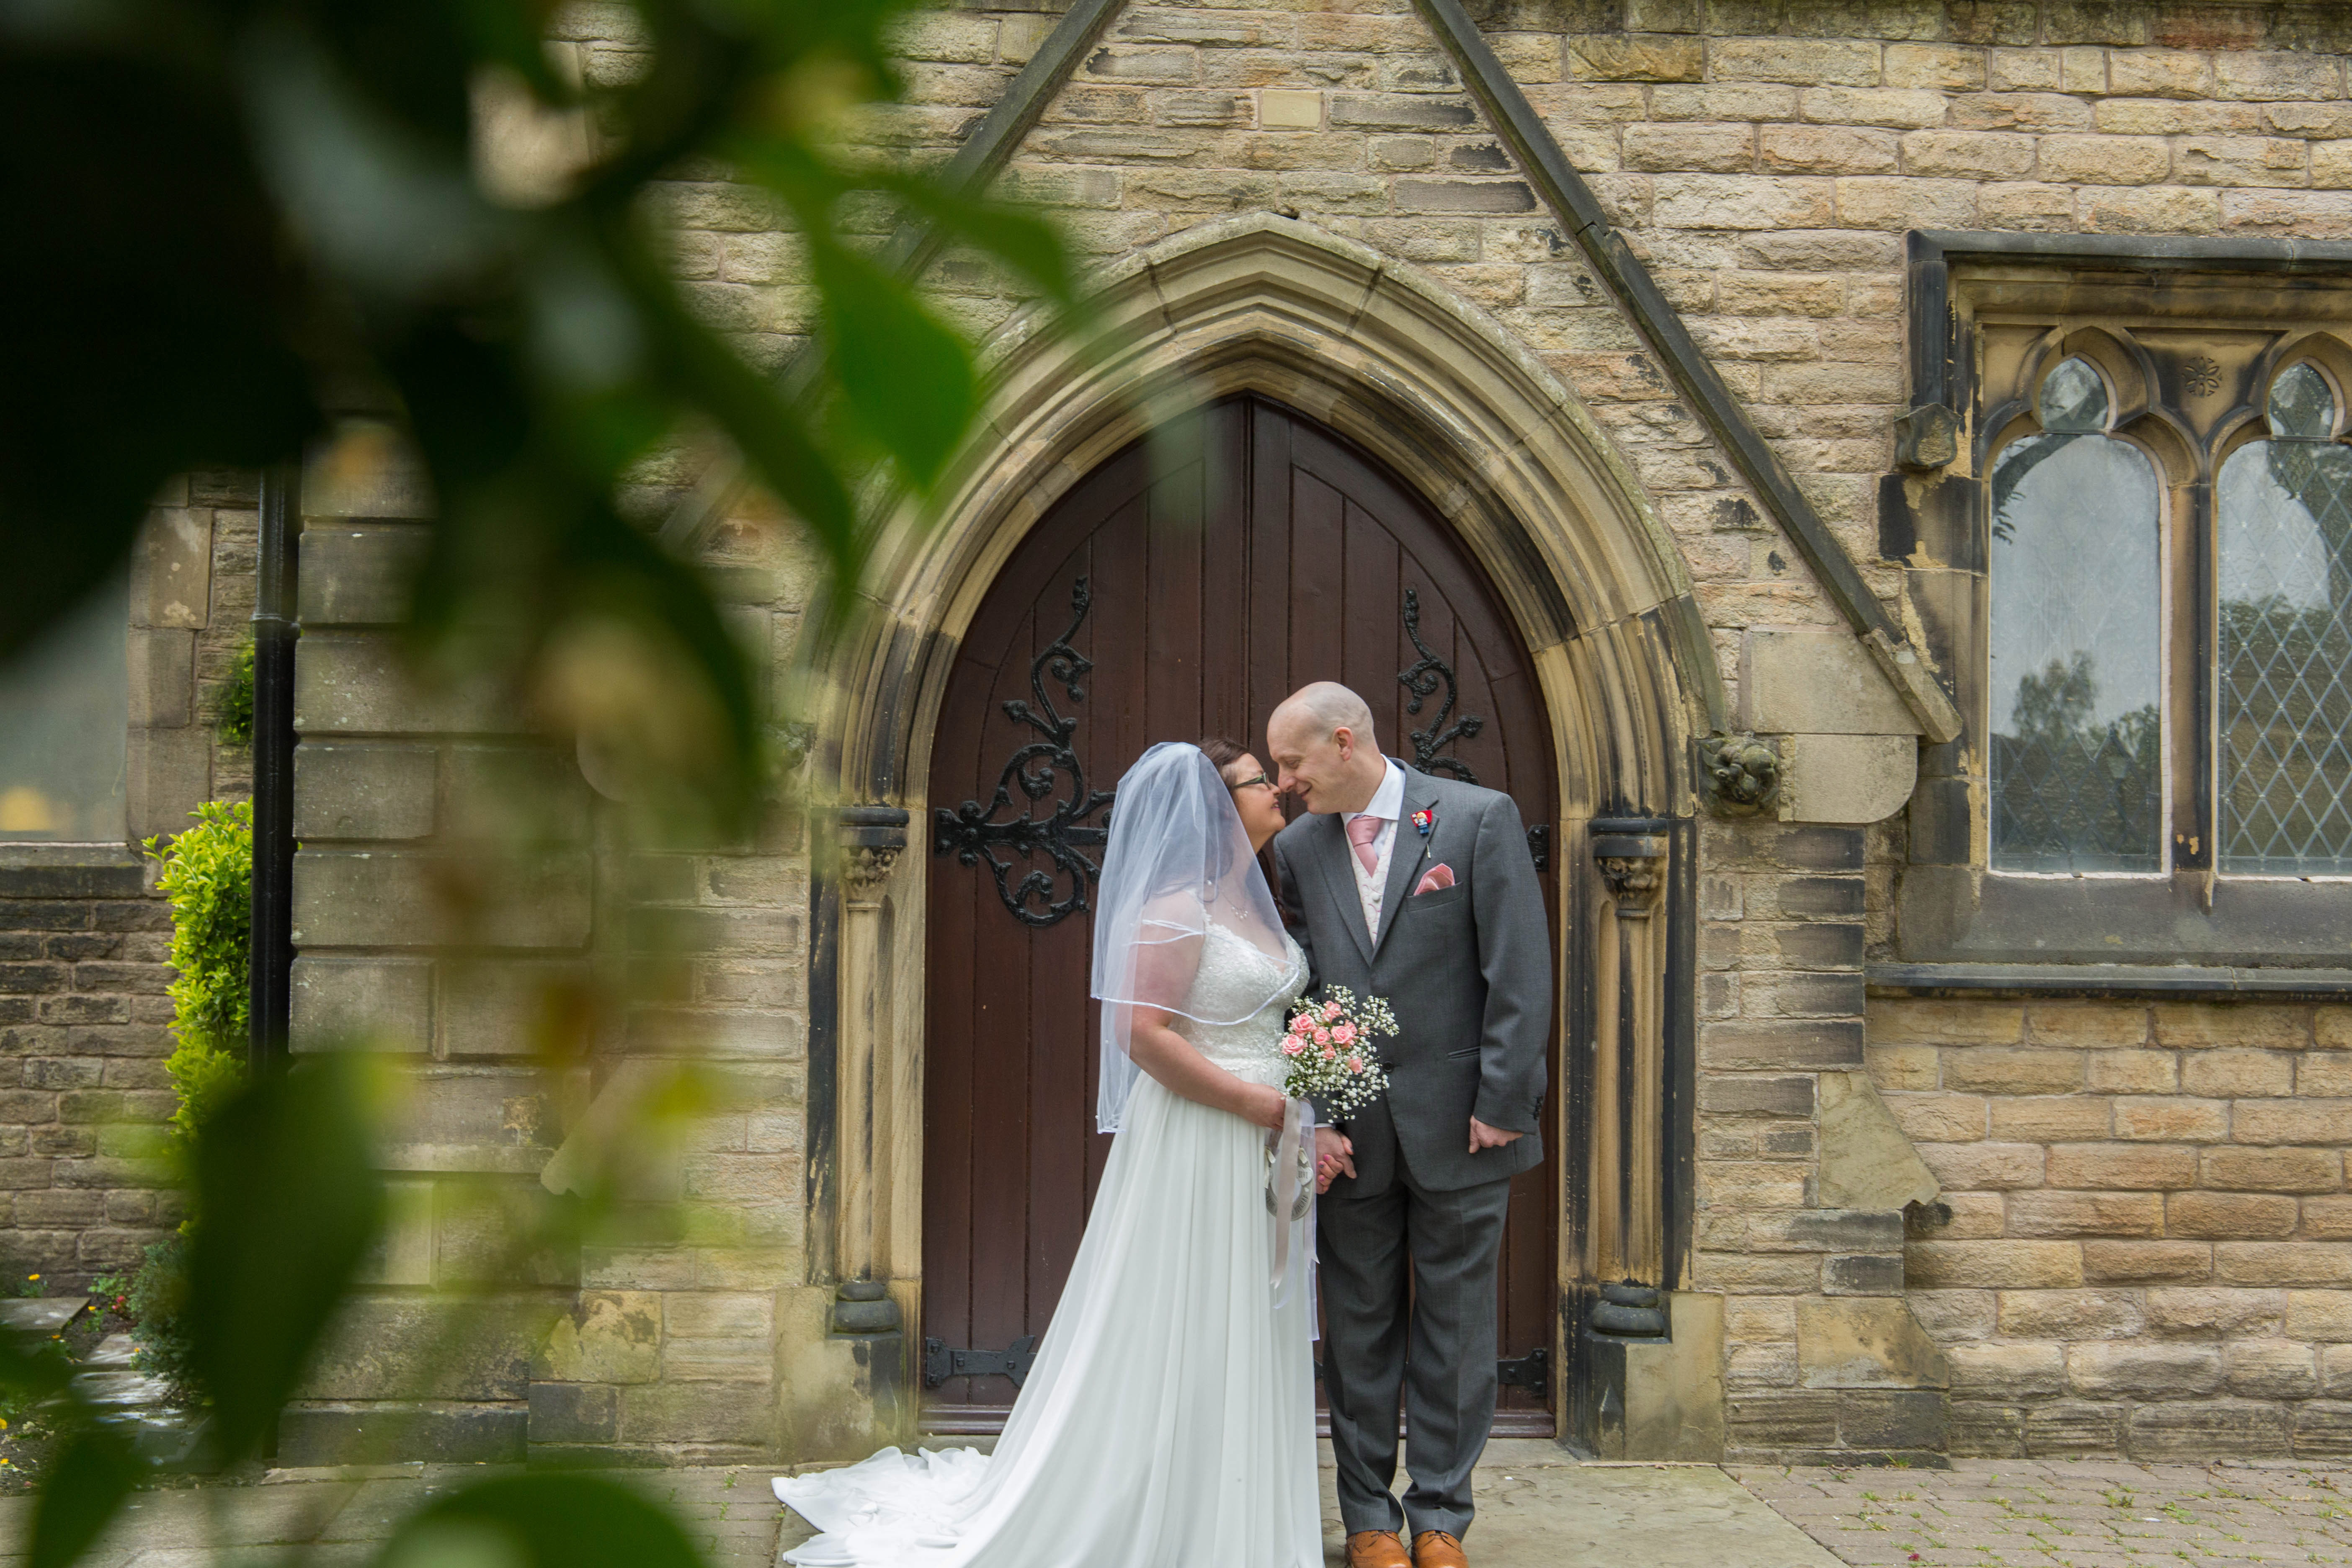 Oldham wedding photographer - bride and groom